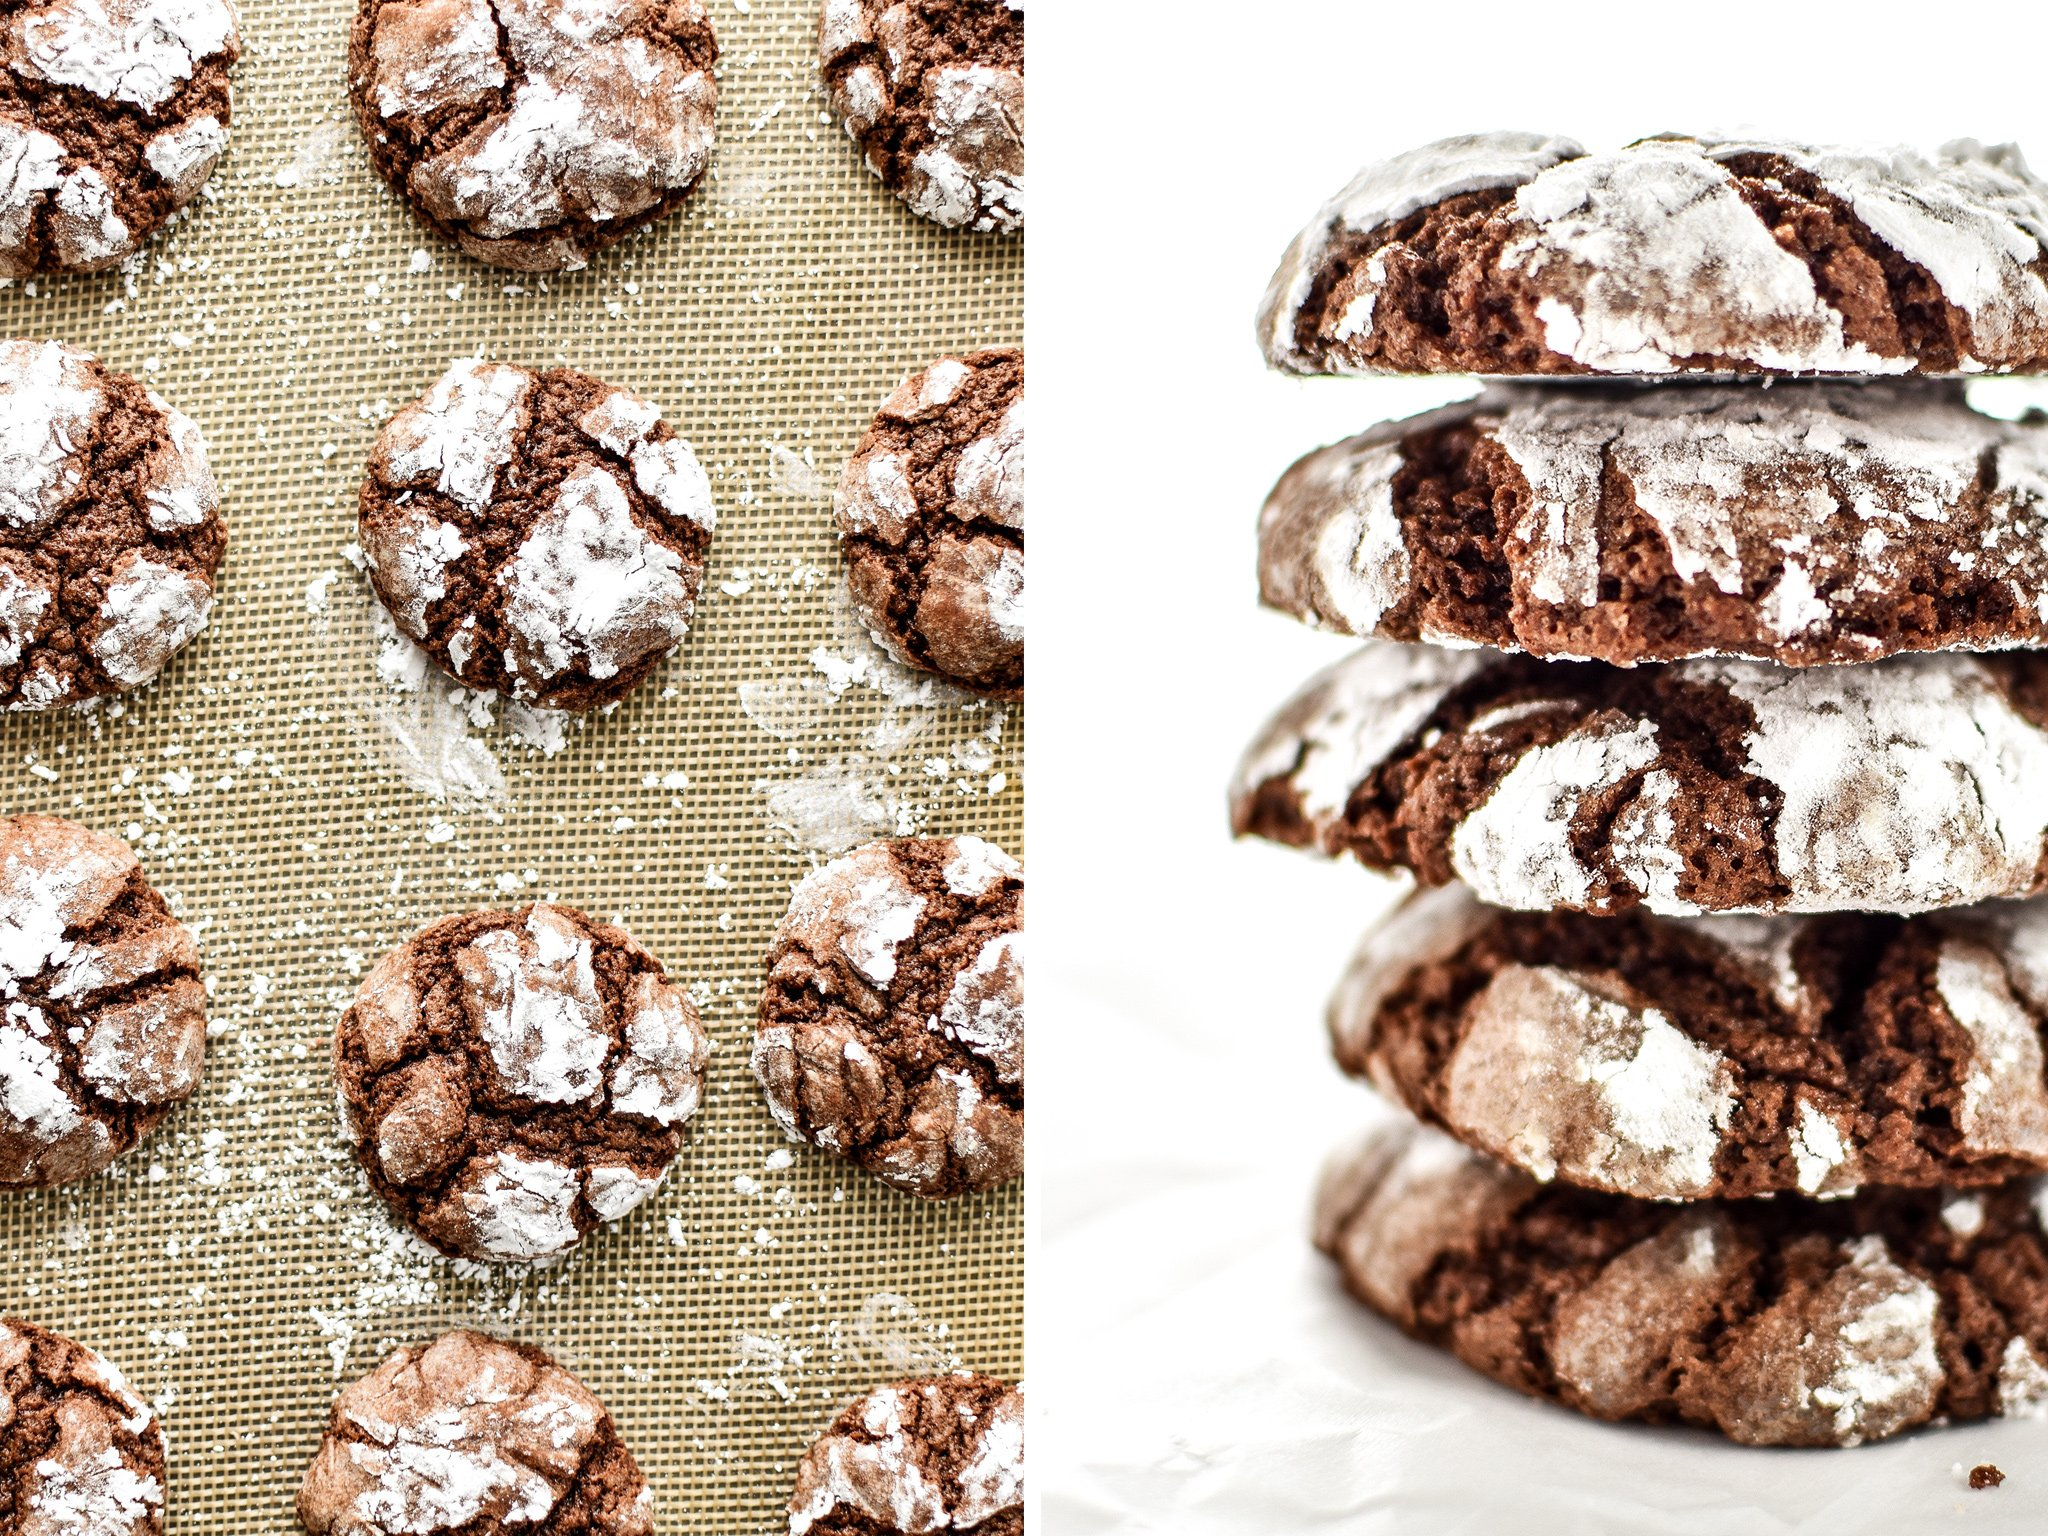 Classic Chewy Chocolate Crinkle Cookies - The chewiest, fudgiest, softest cookies that are rolled in powdered sugar and perfect for the holidays! - ProjectMealPlan.com